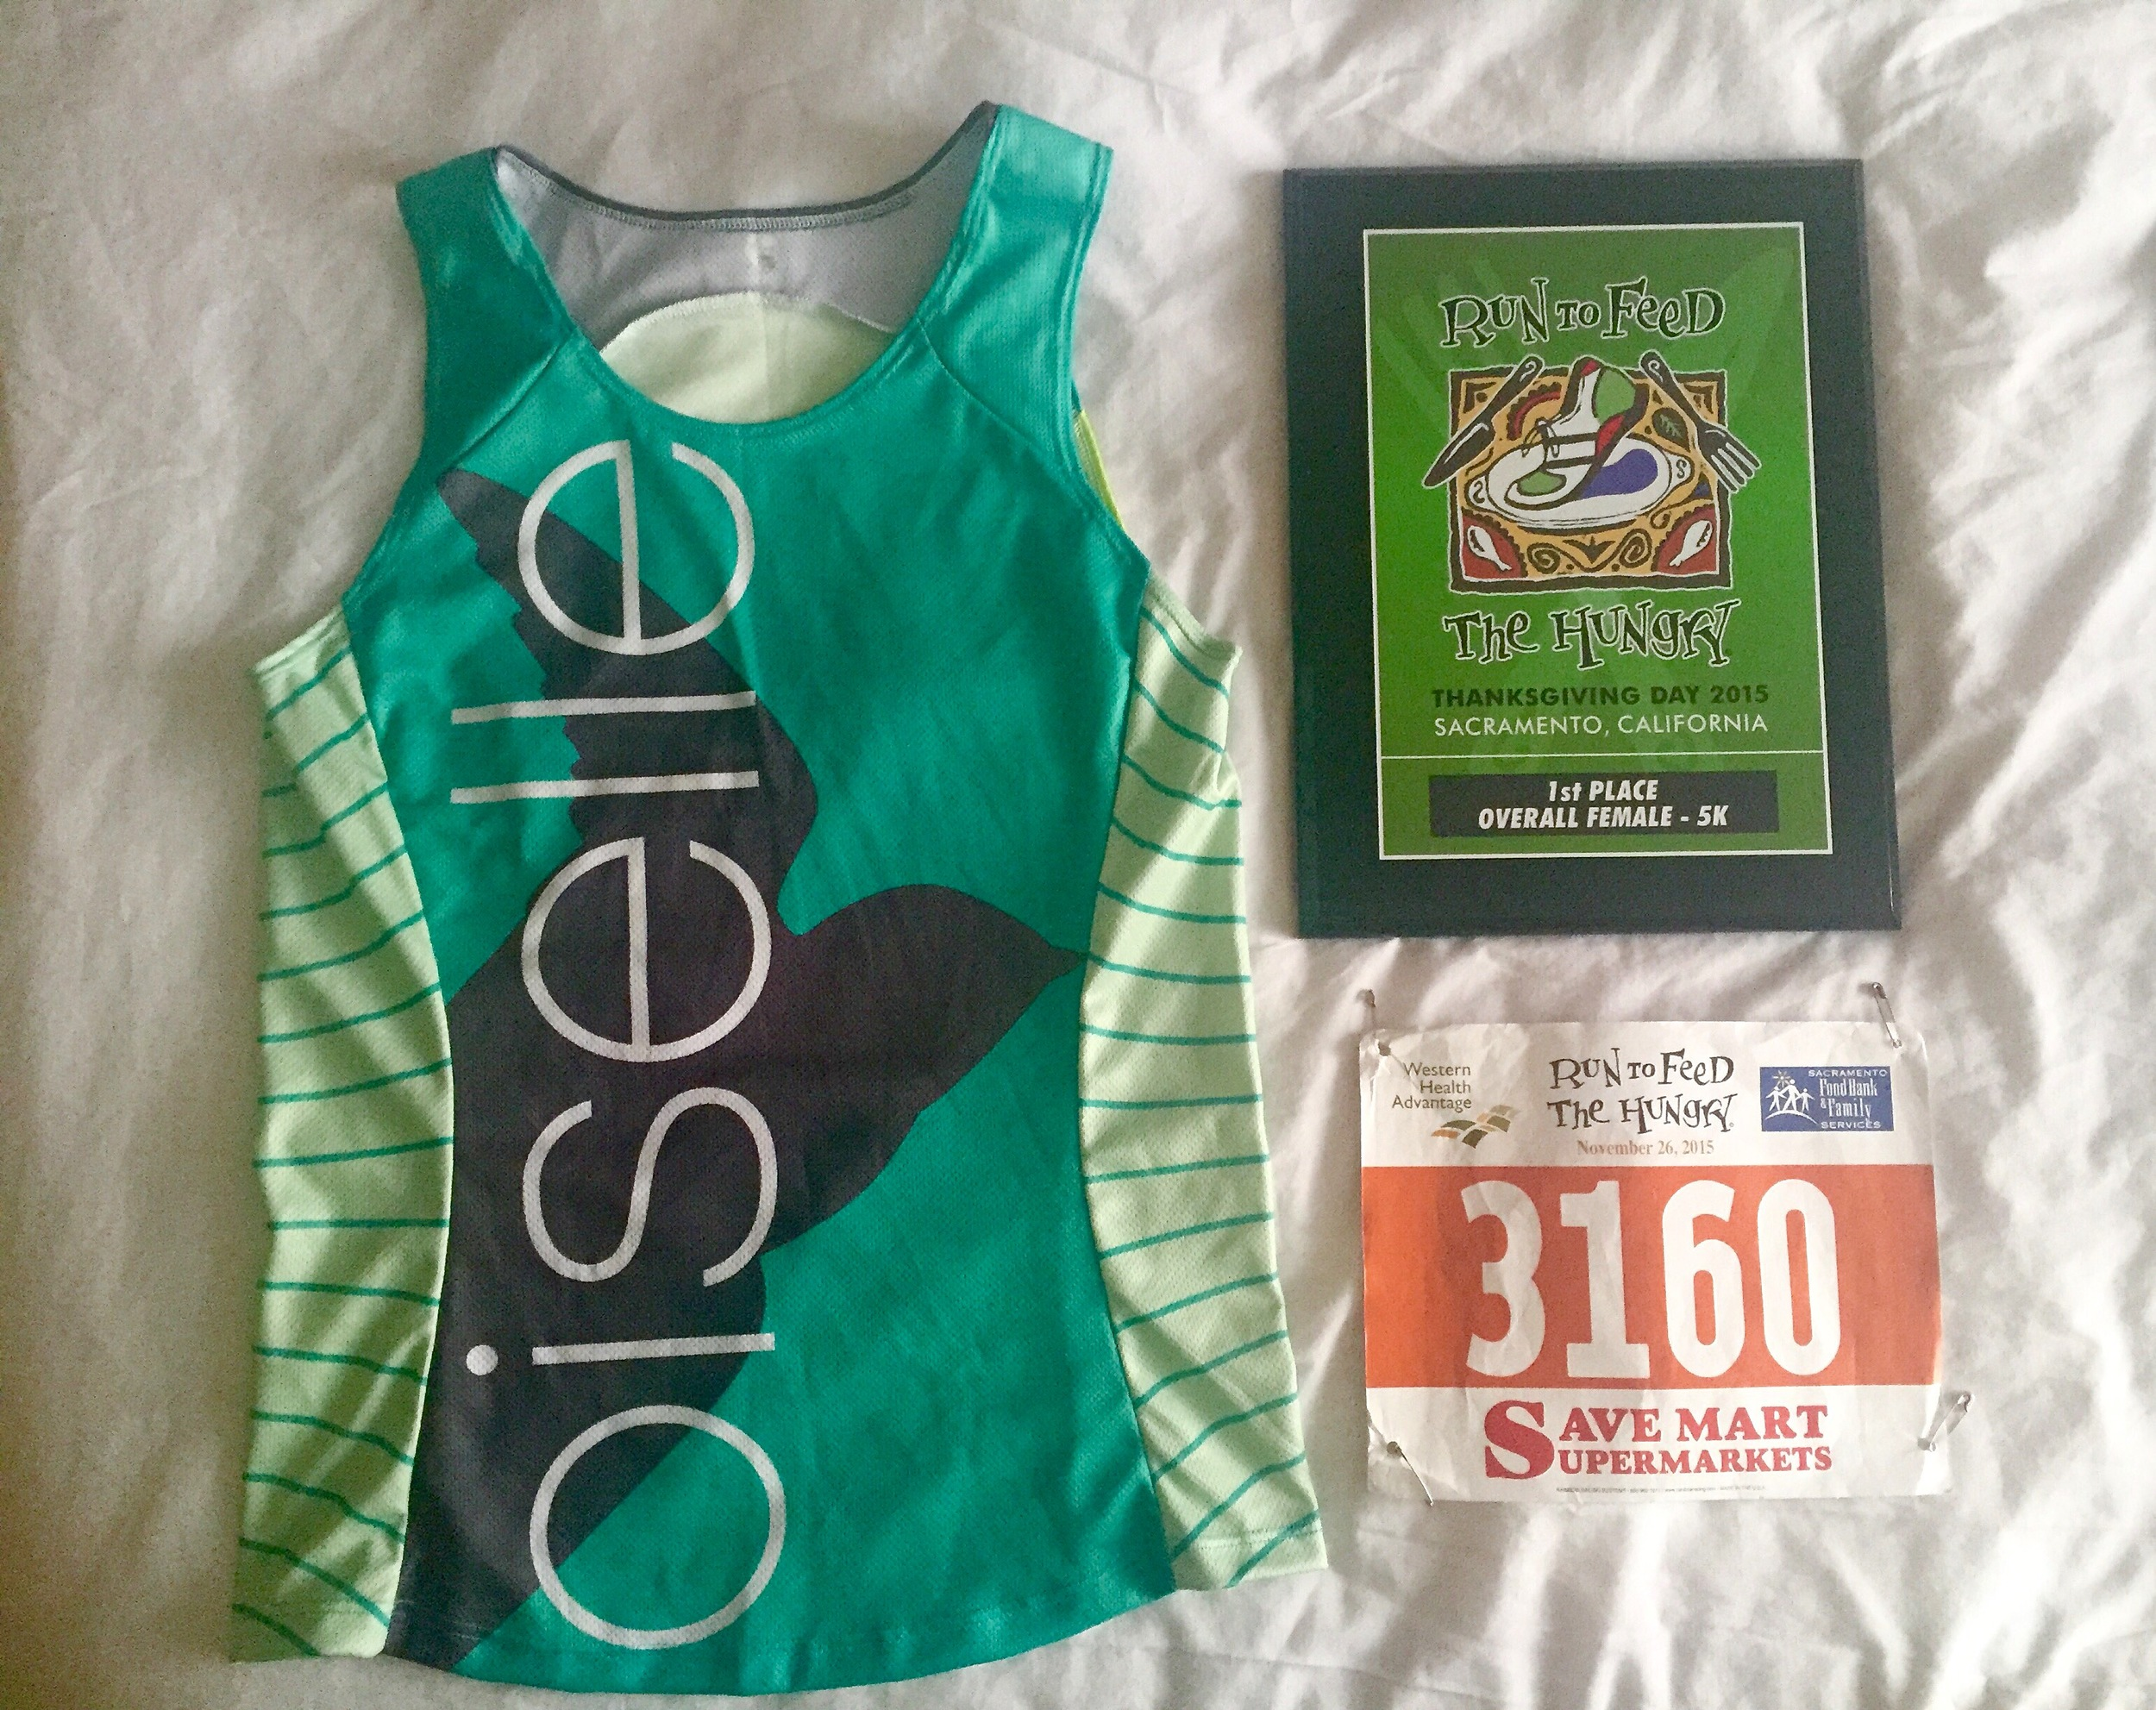 blog post coming soon about this race!